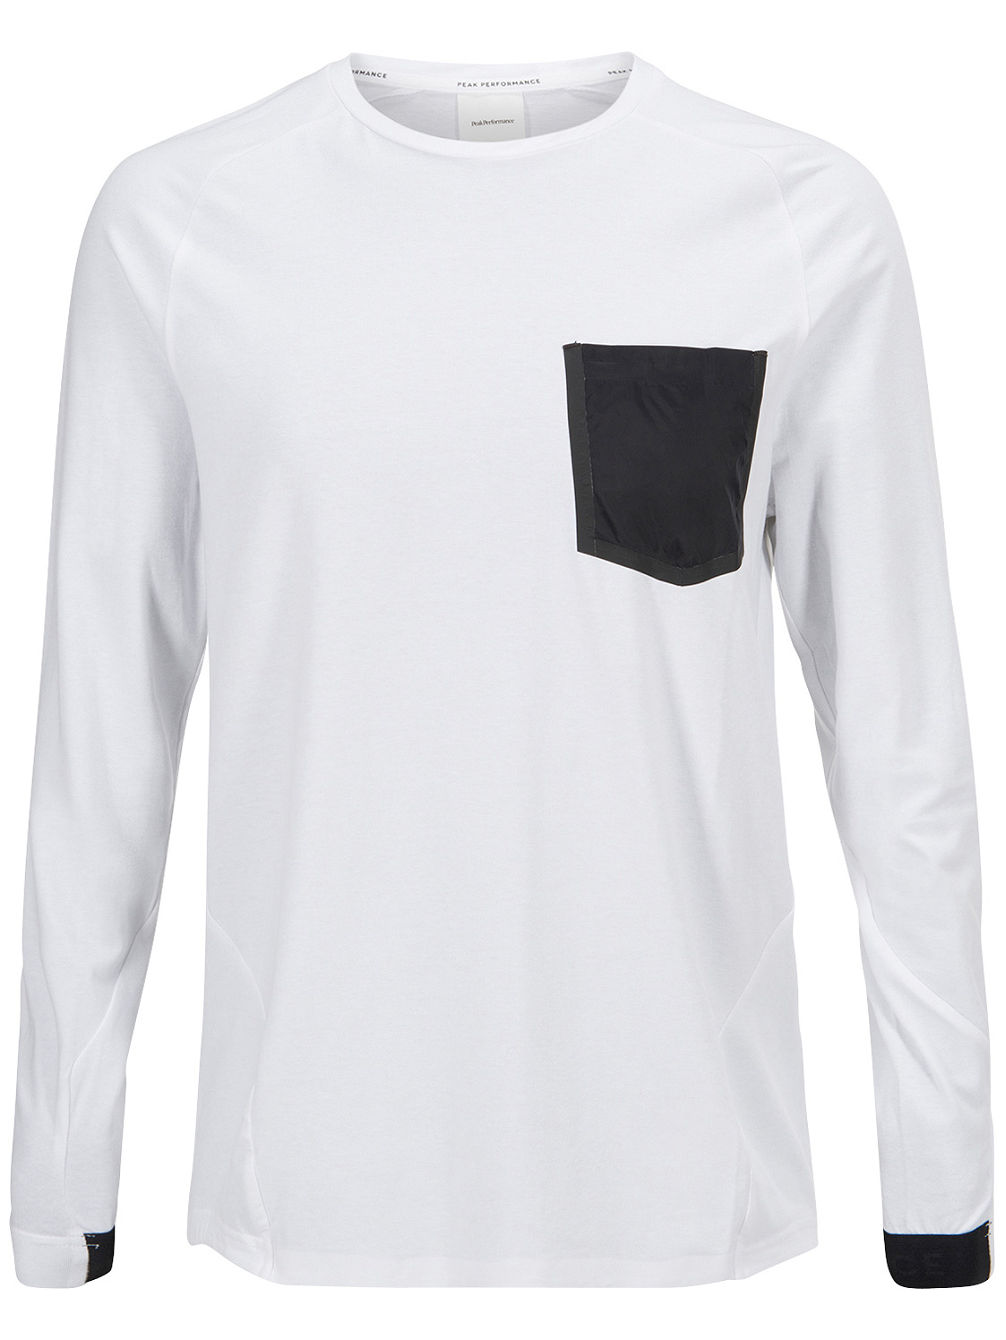 Nylon Tech Tee LS